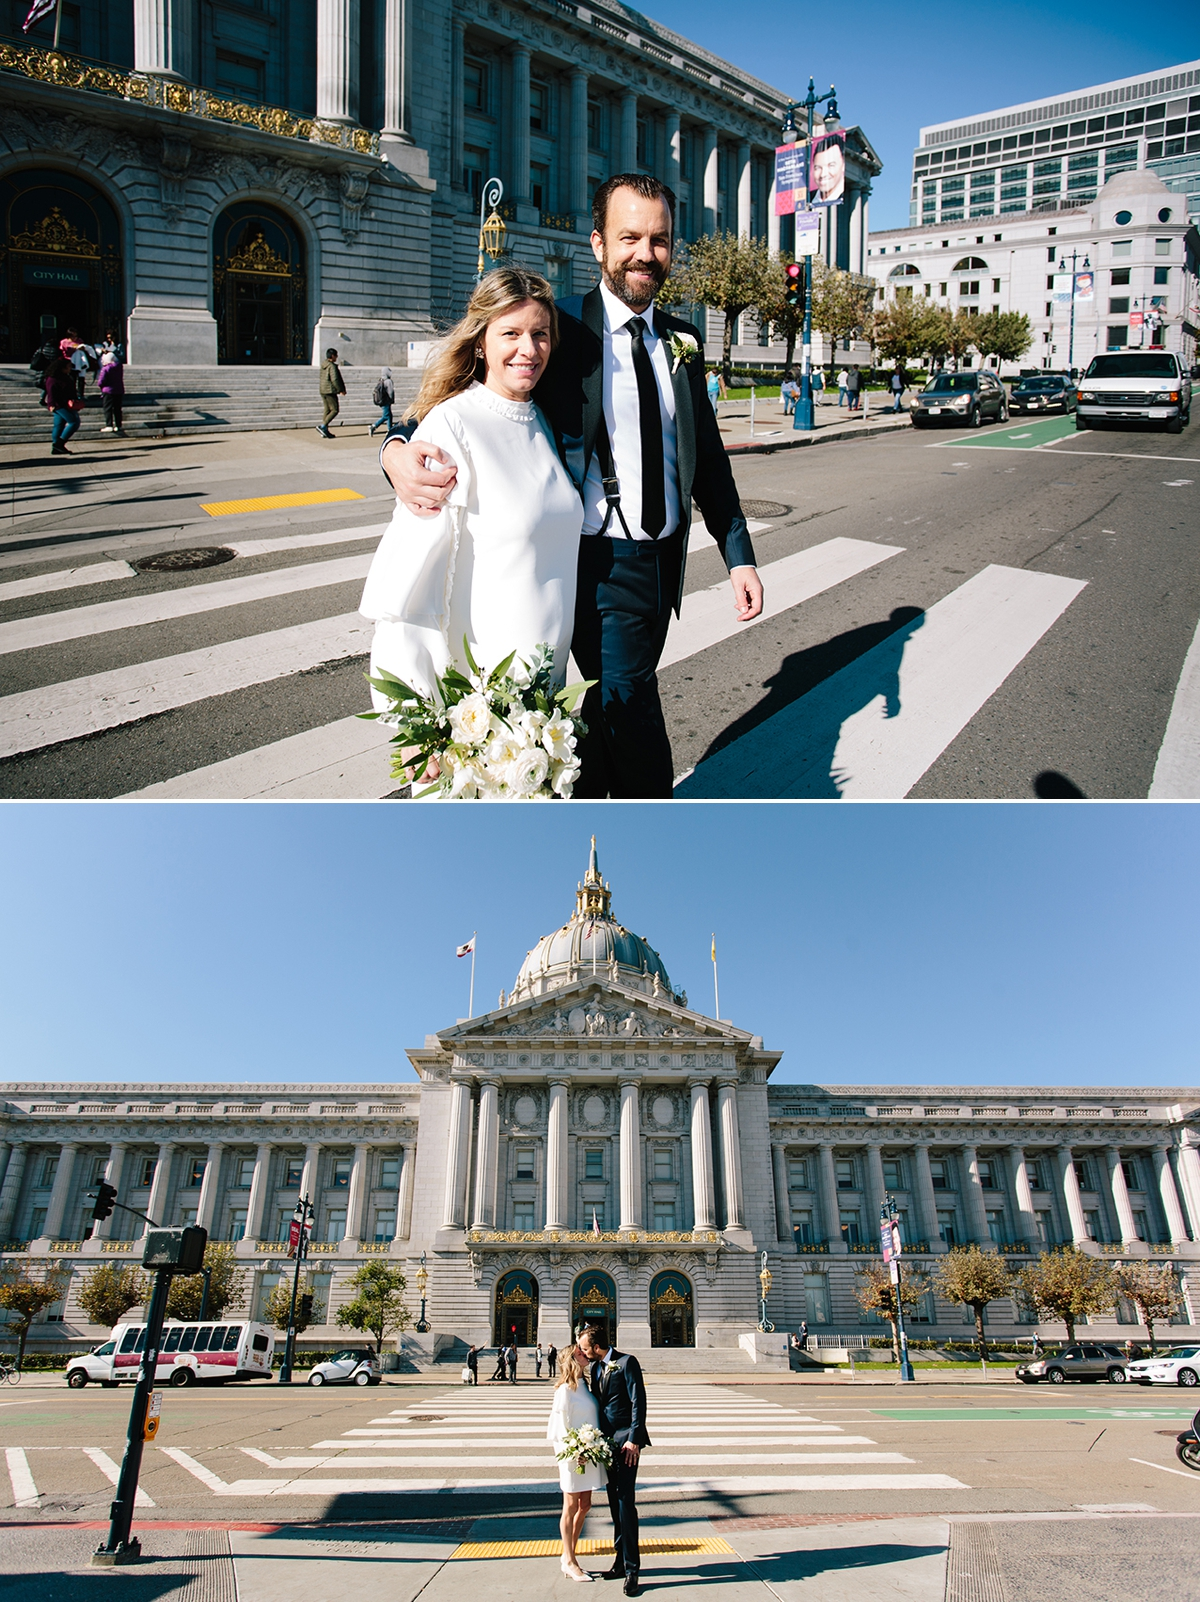 The bride and groom walk across the street from San Francisco City Hall and share a kiss.